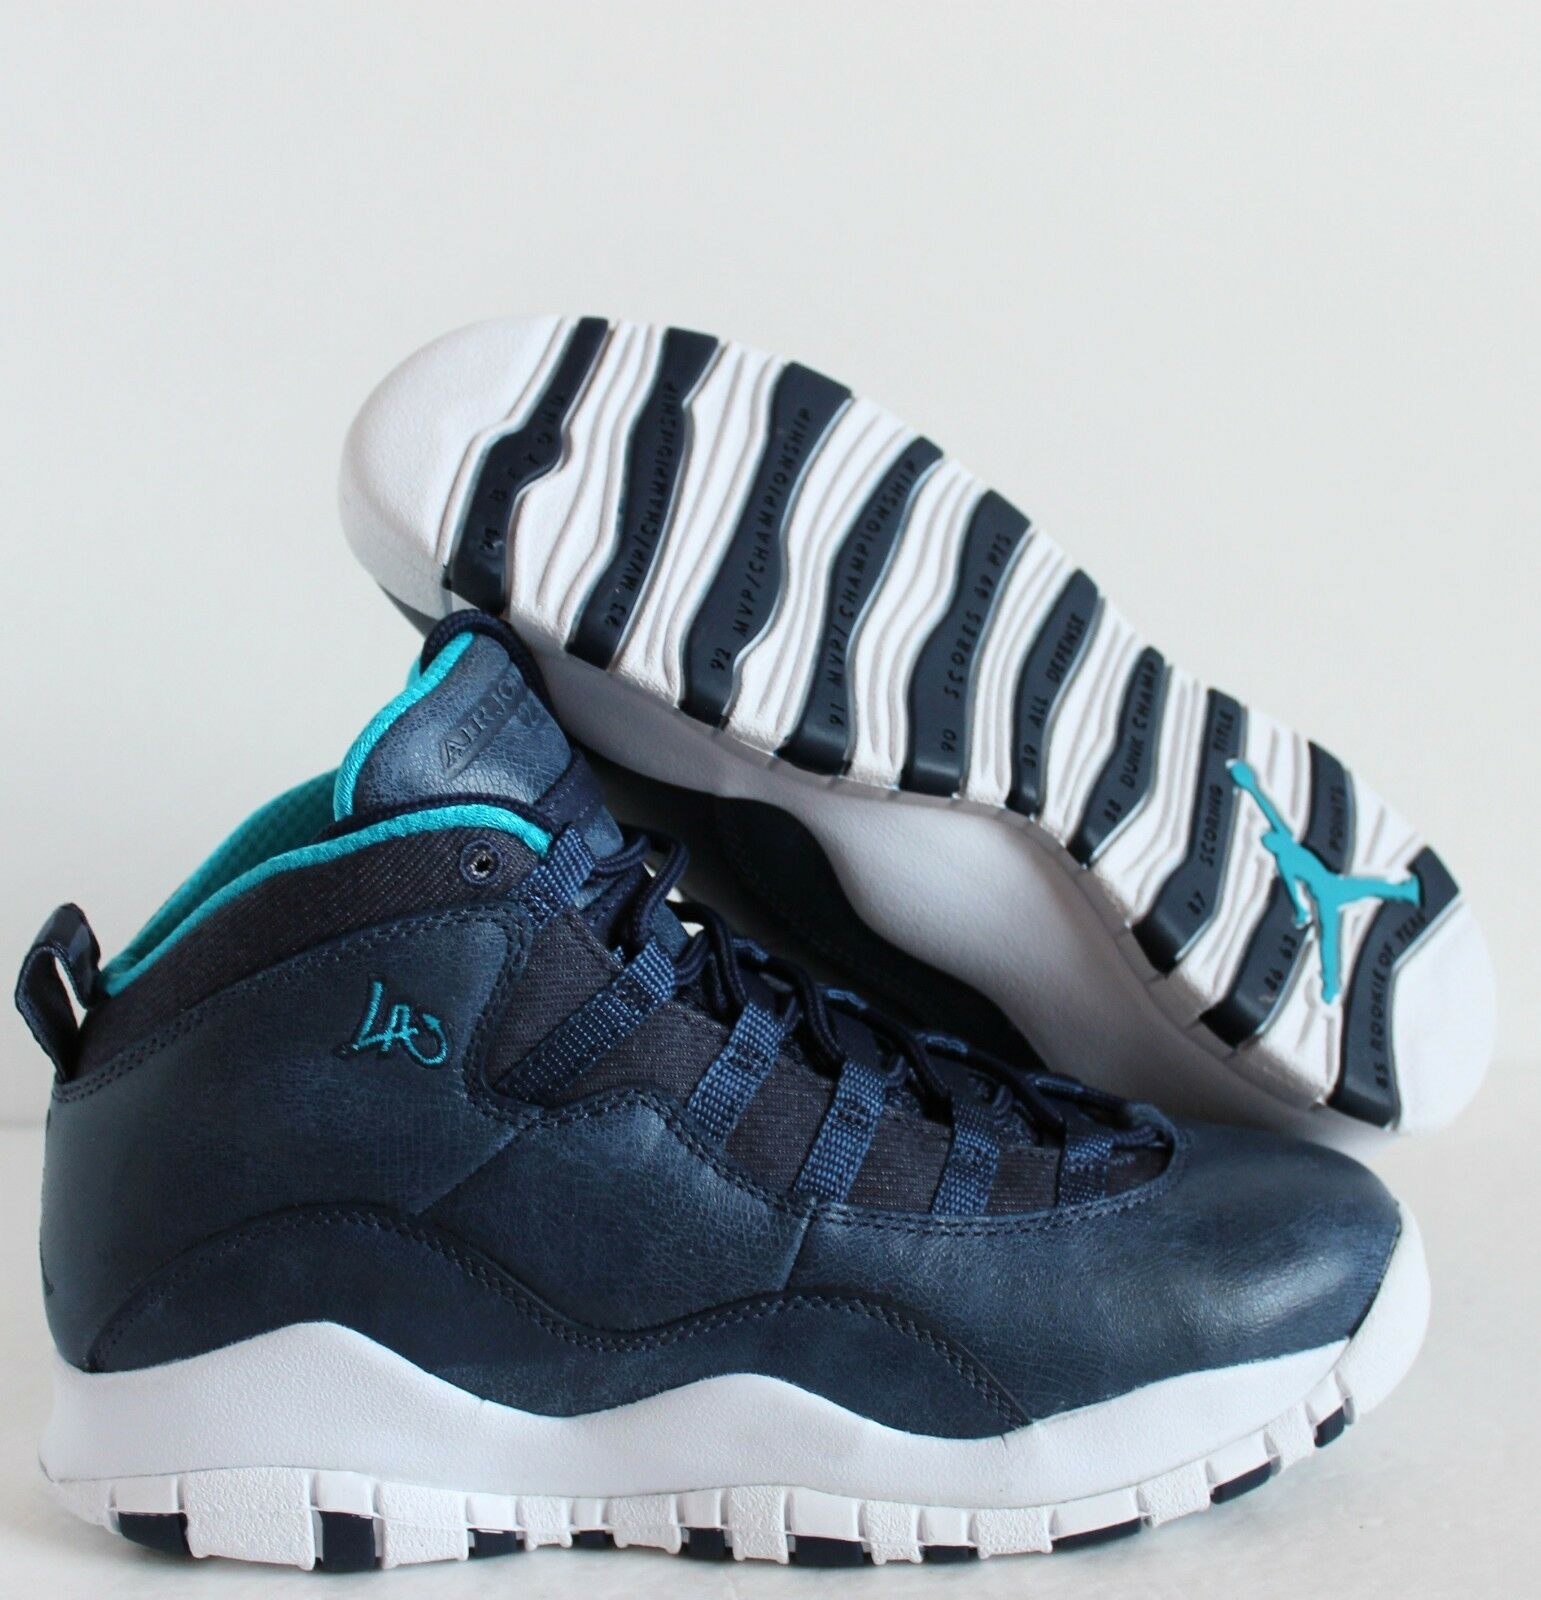 Nike Air Jordan 10 Retro BG Los Angeles City Pack sz 5Y/WMNS  6.5  [310806-404]